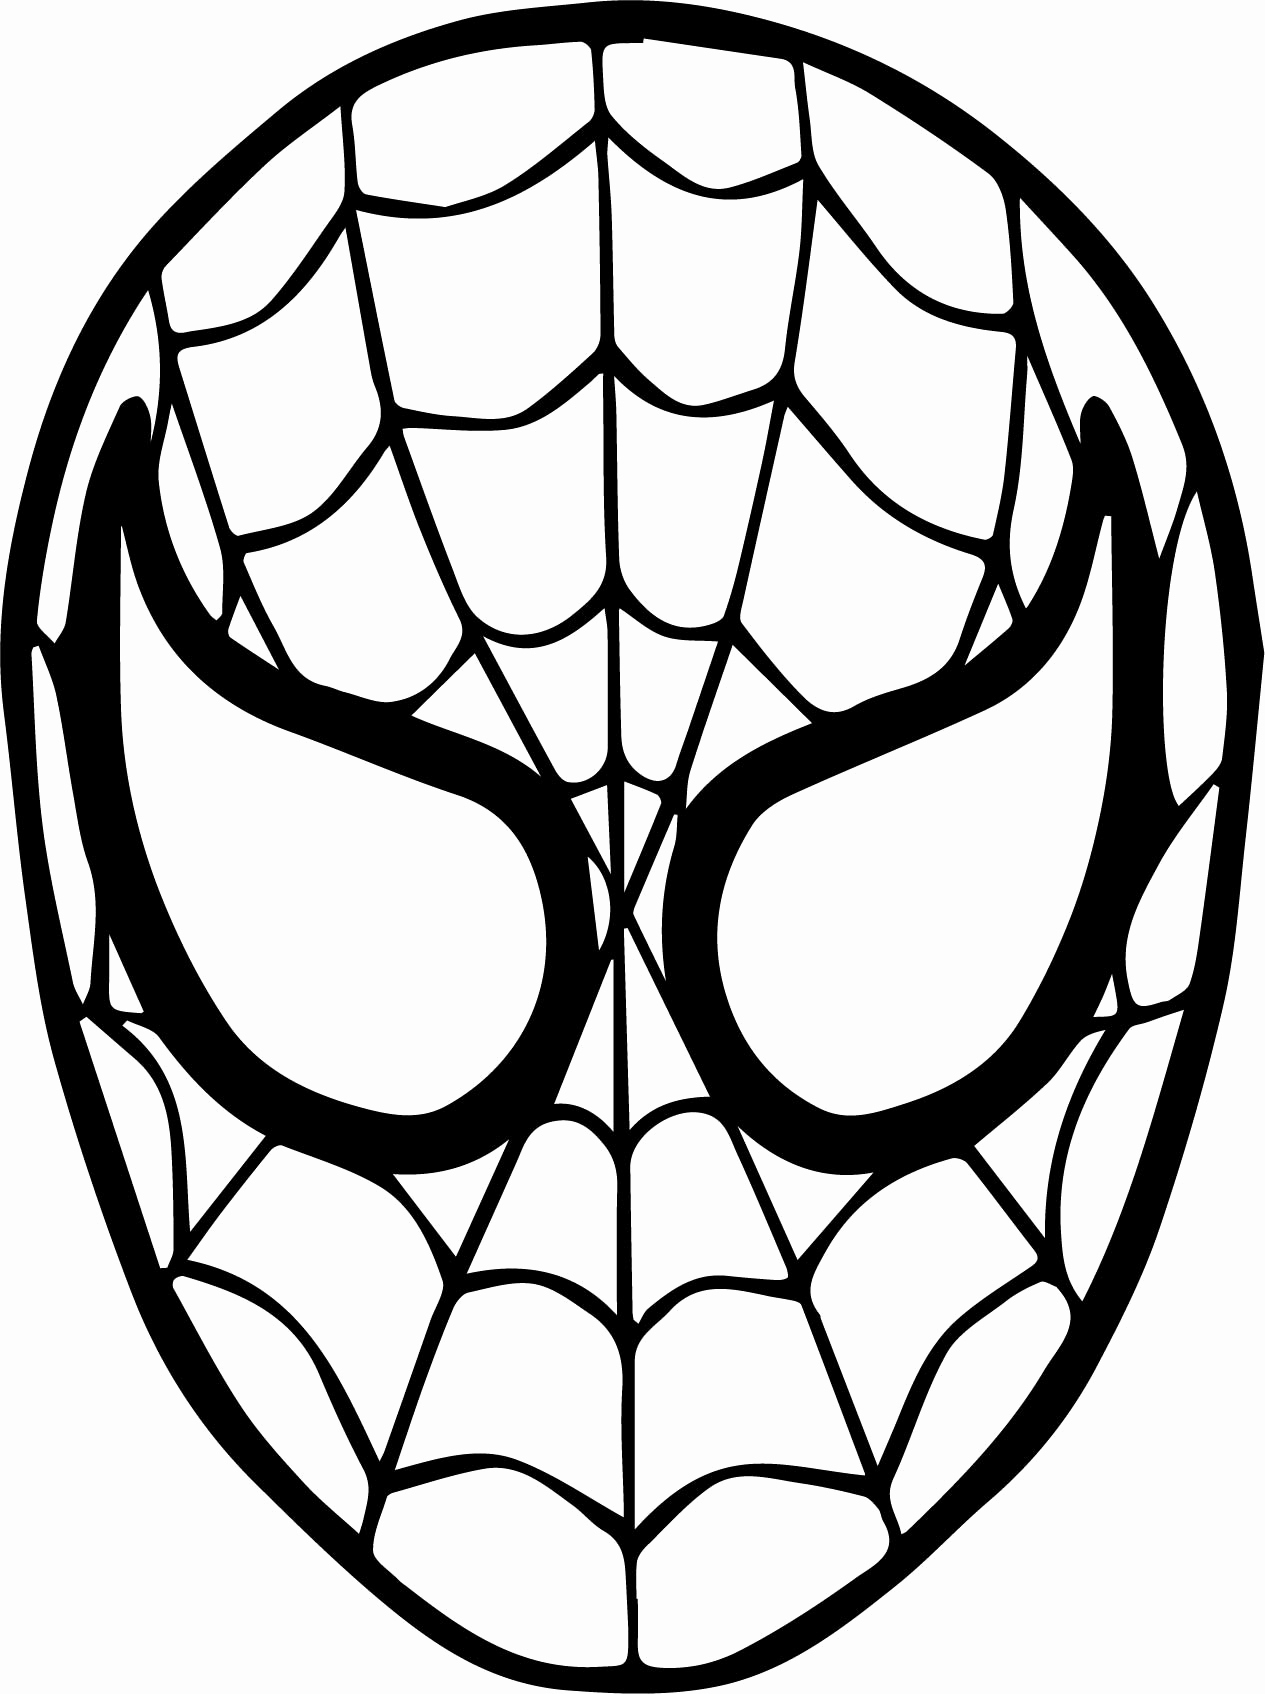 spiderman coloring pages easy cute easy spiderman coloring pages printable pdf easy pages coloring spiderman